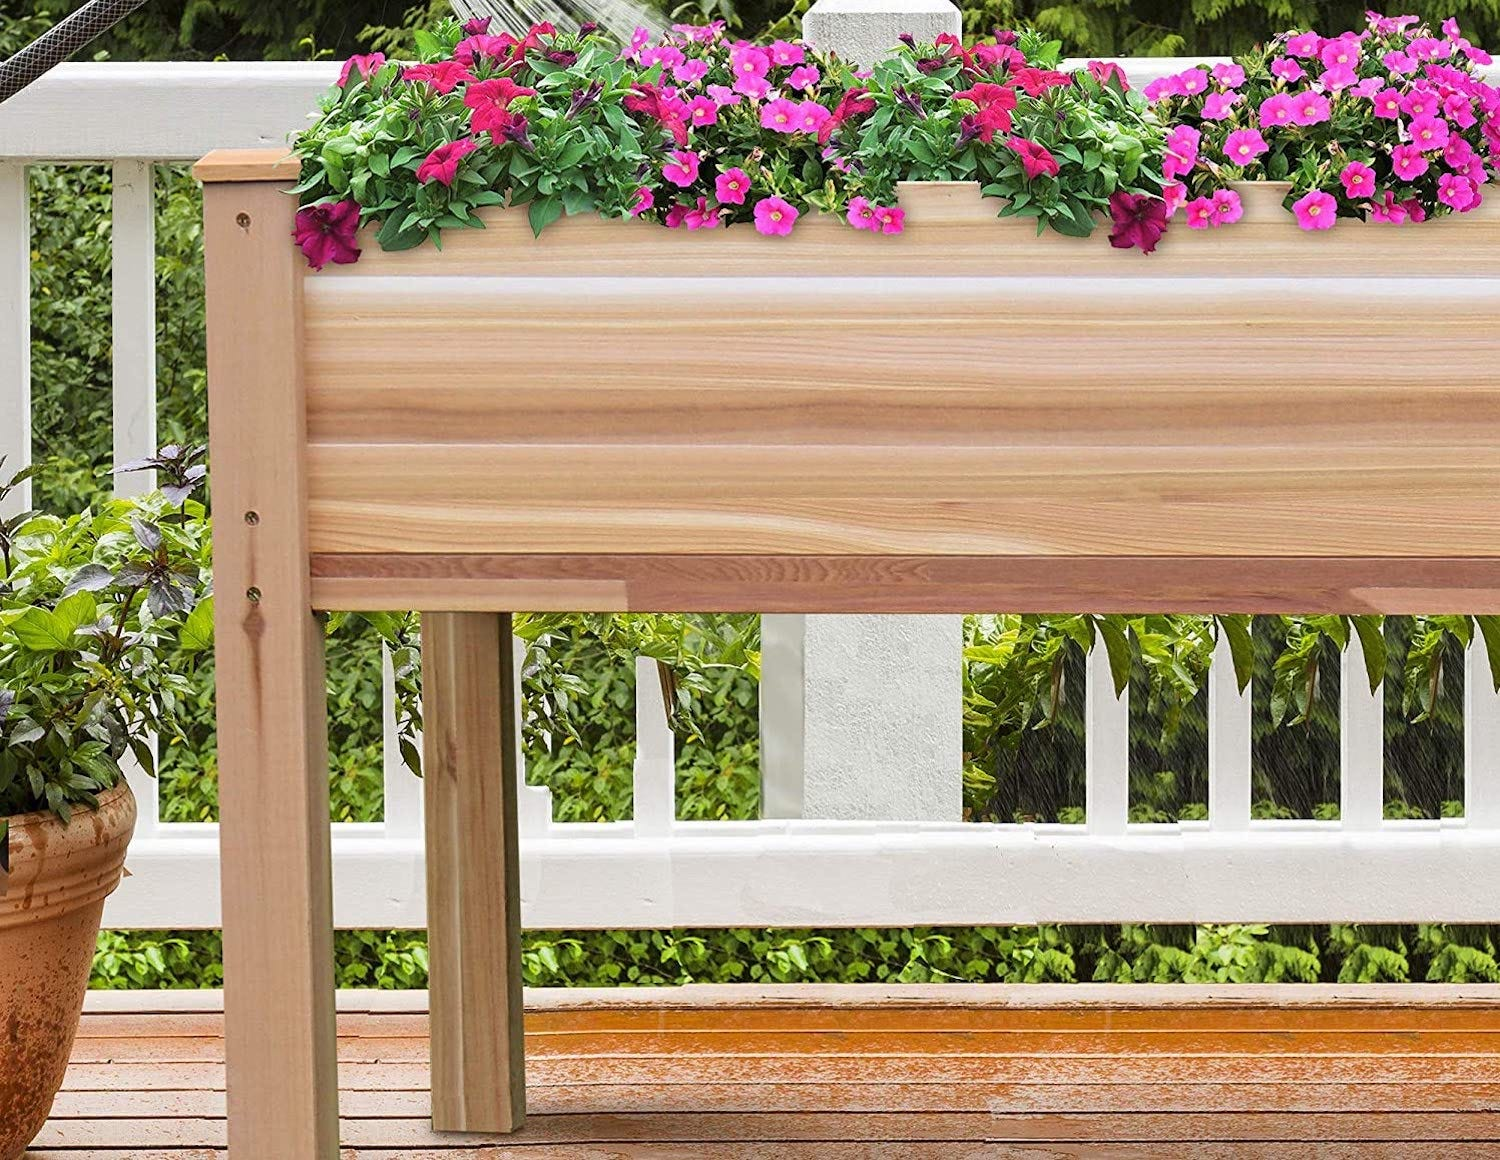 A raised planter bed, with wooden sides and legs, filled with colorful flowers